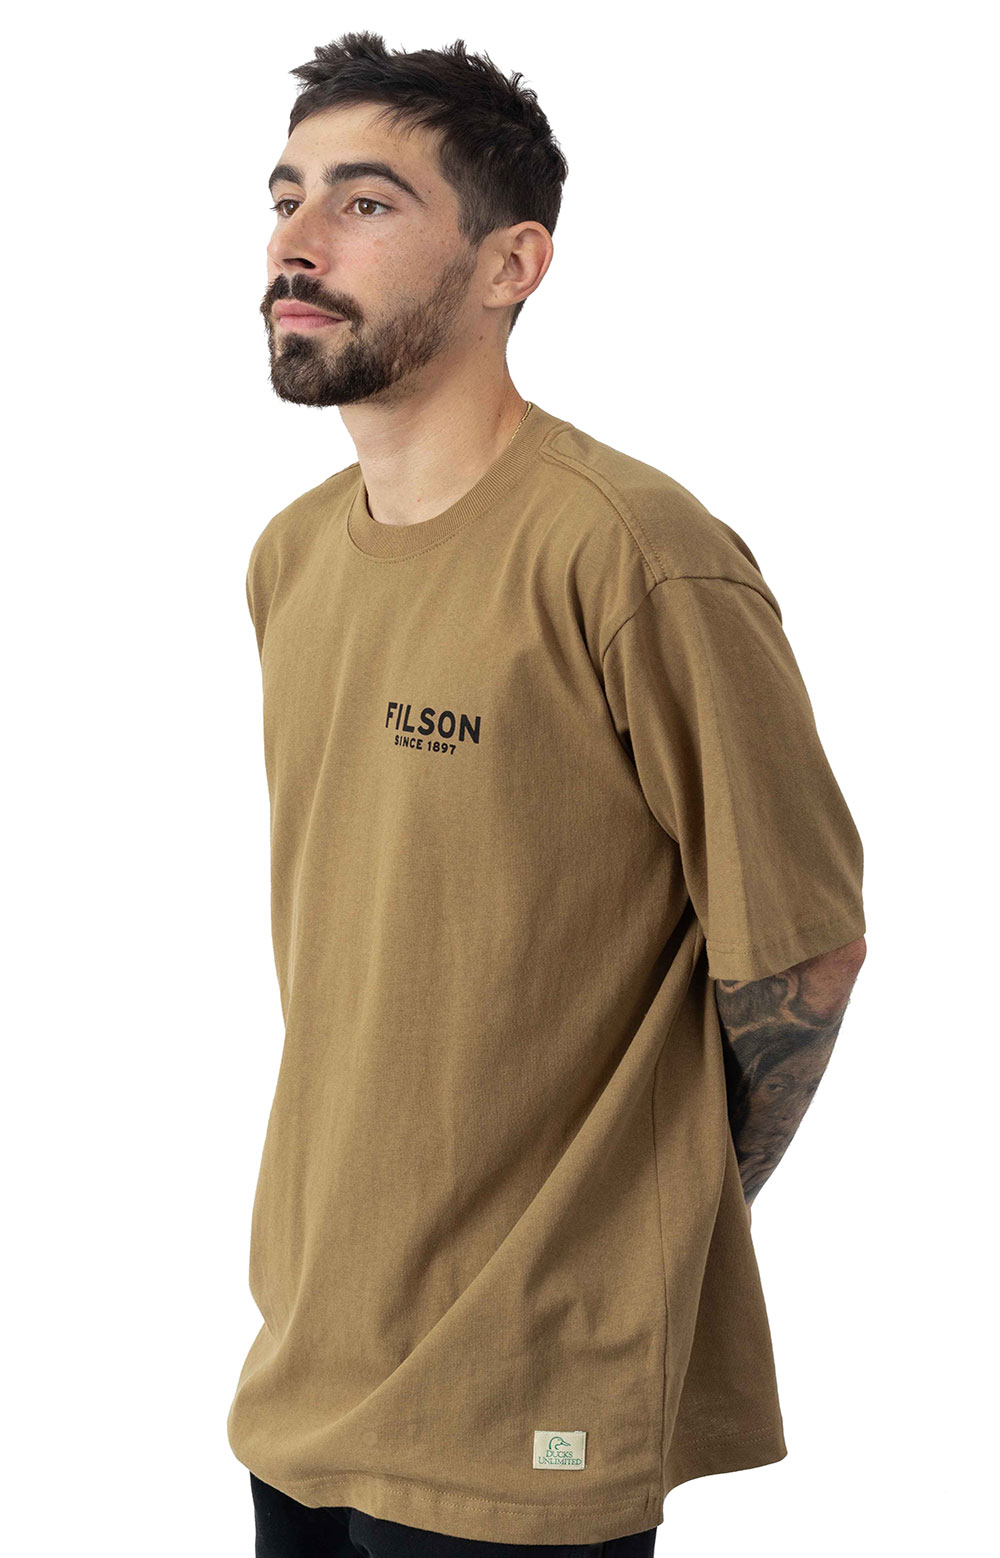 S/S Outfitter Graphic T-Shirt - Rugged Tan  3